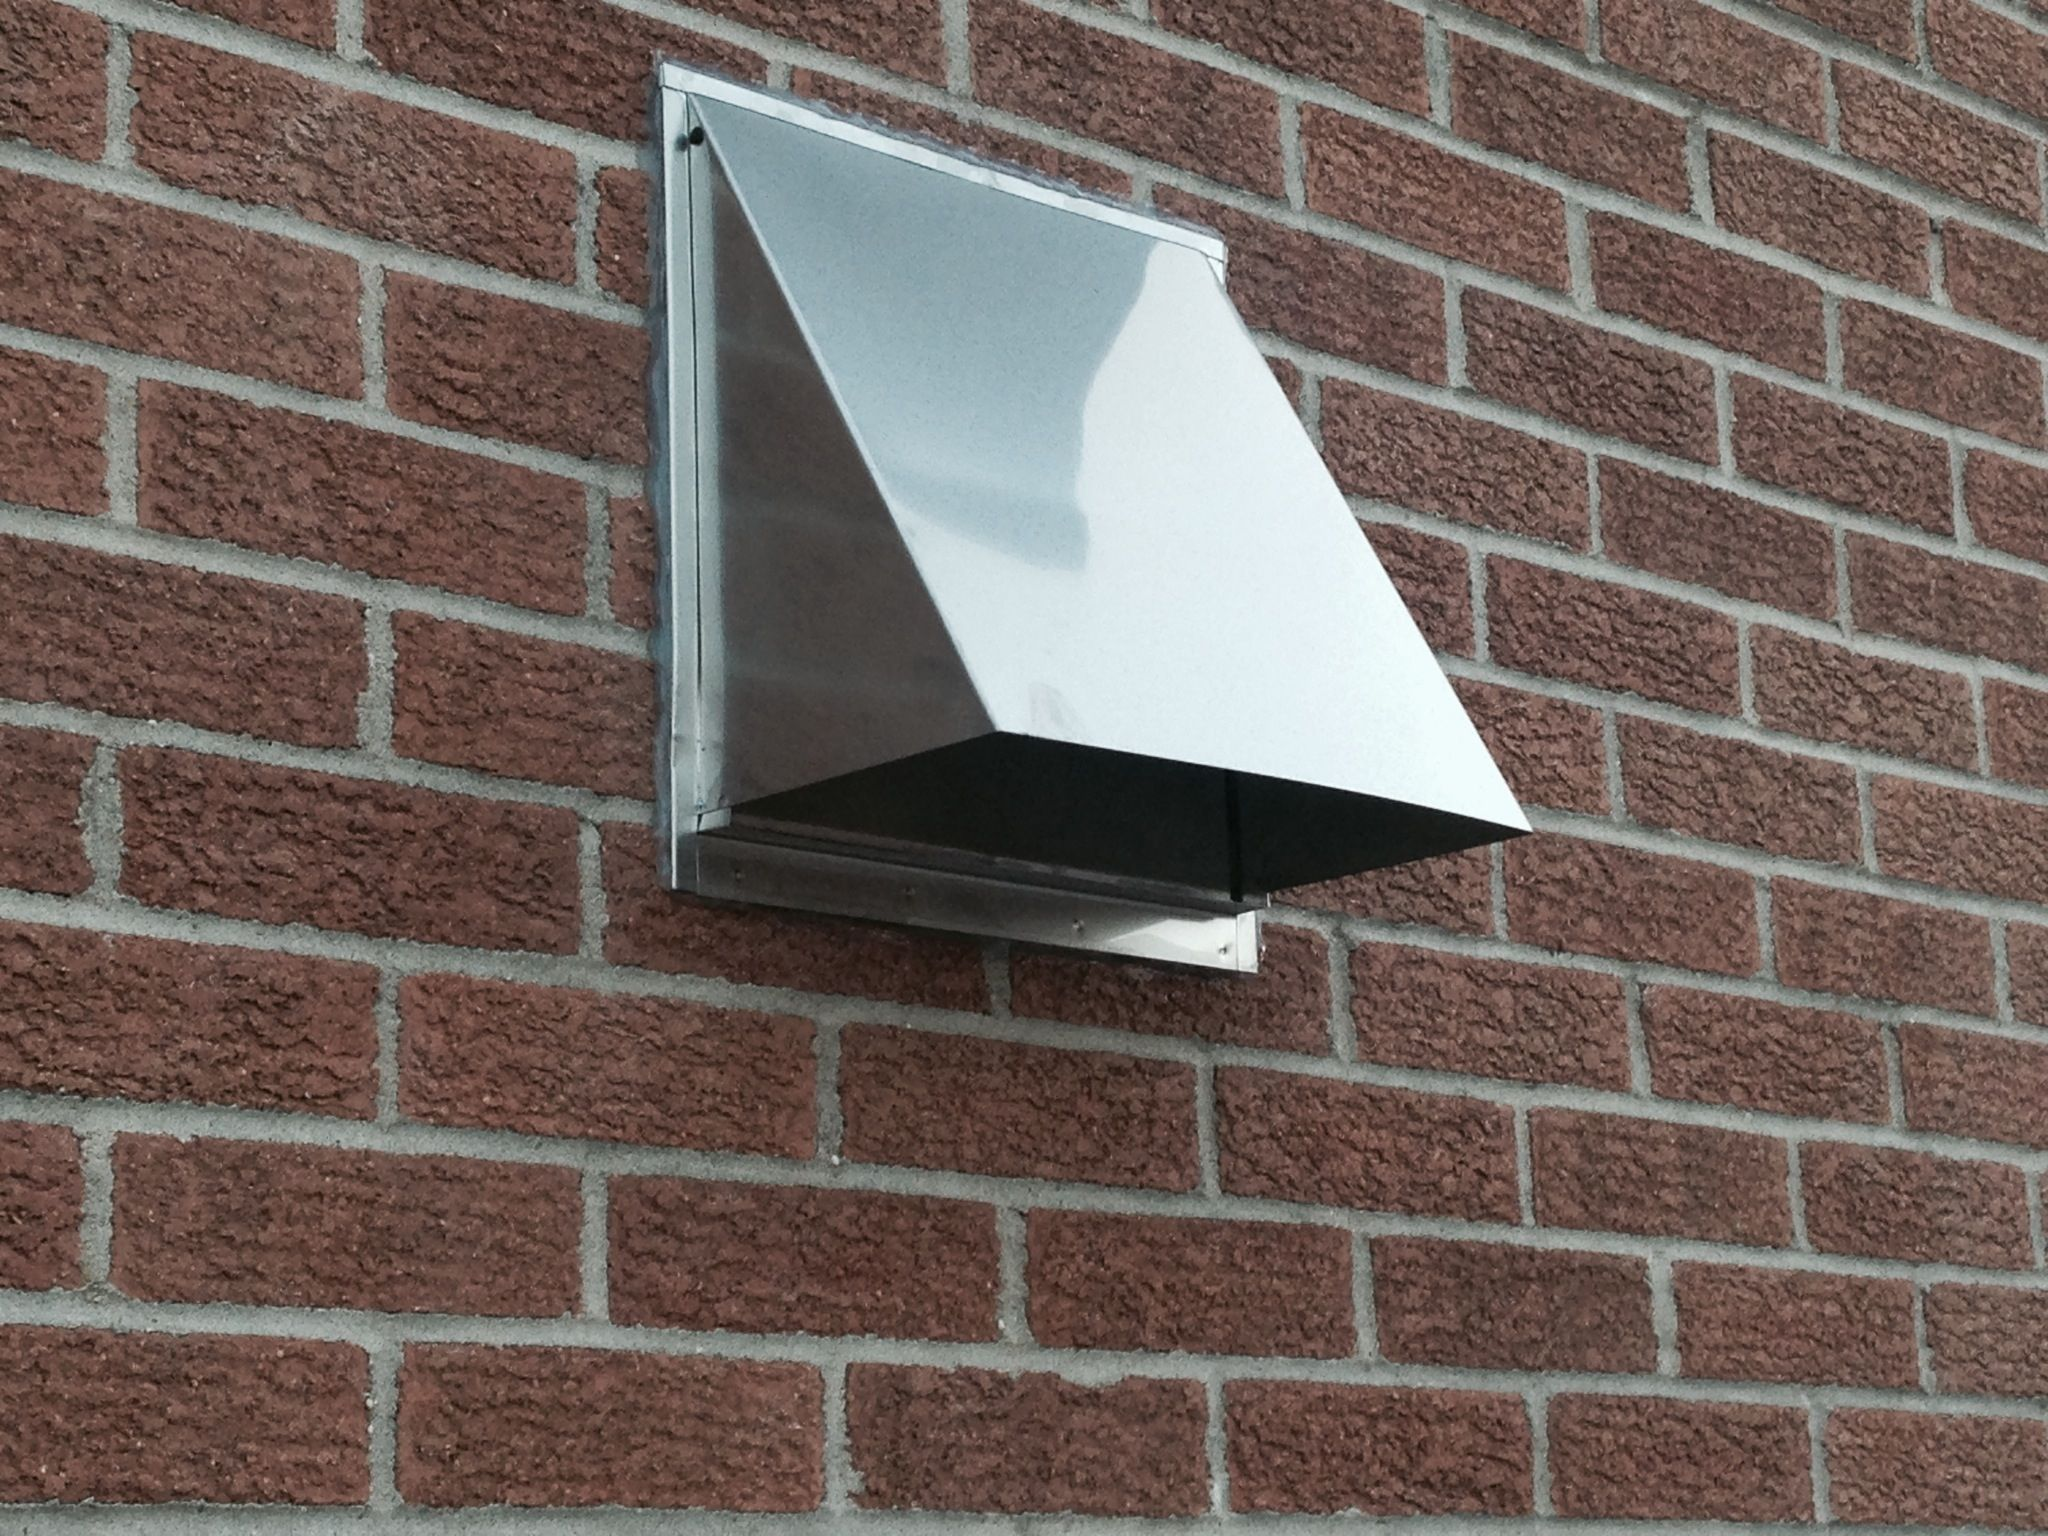 Kitchen Exhaust Fan Duct Cover